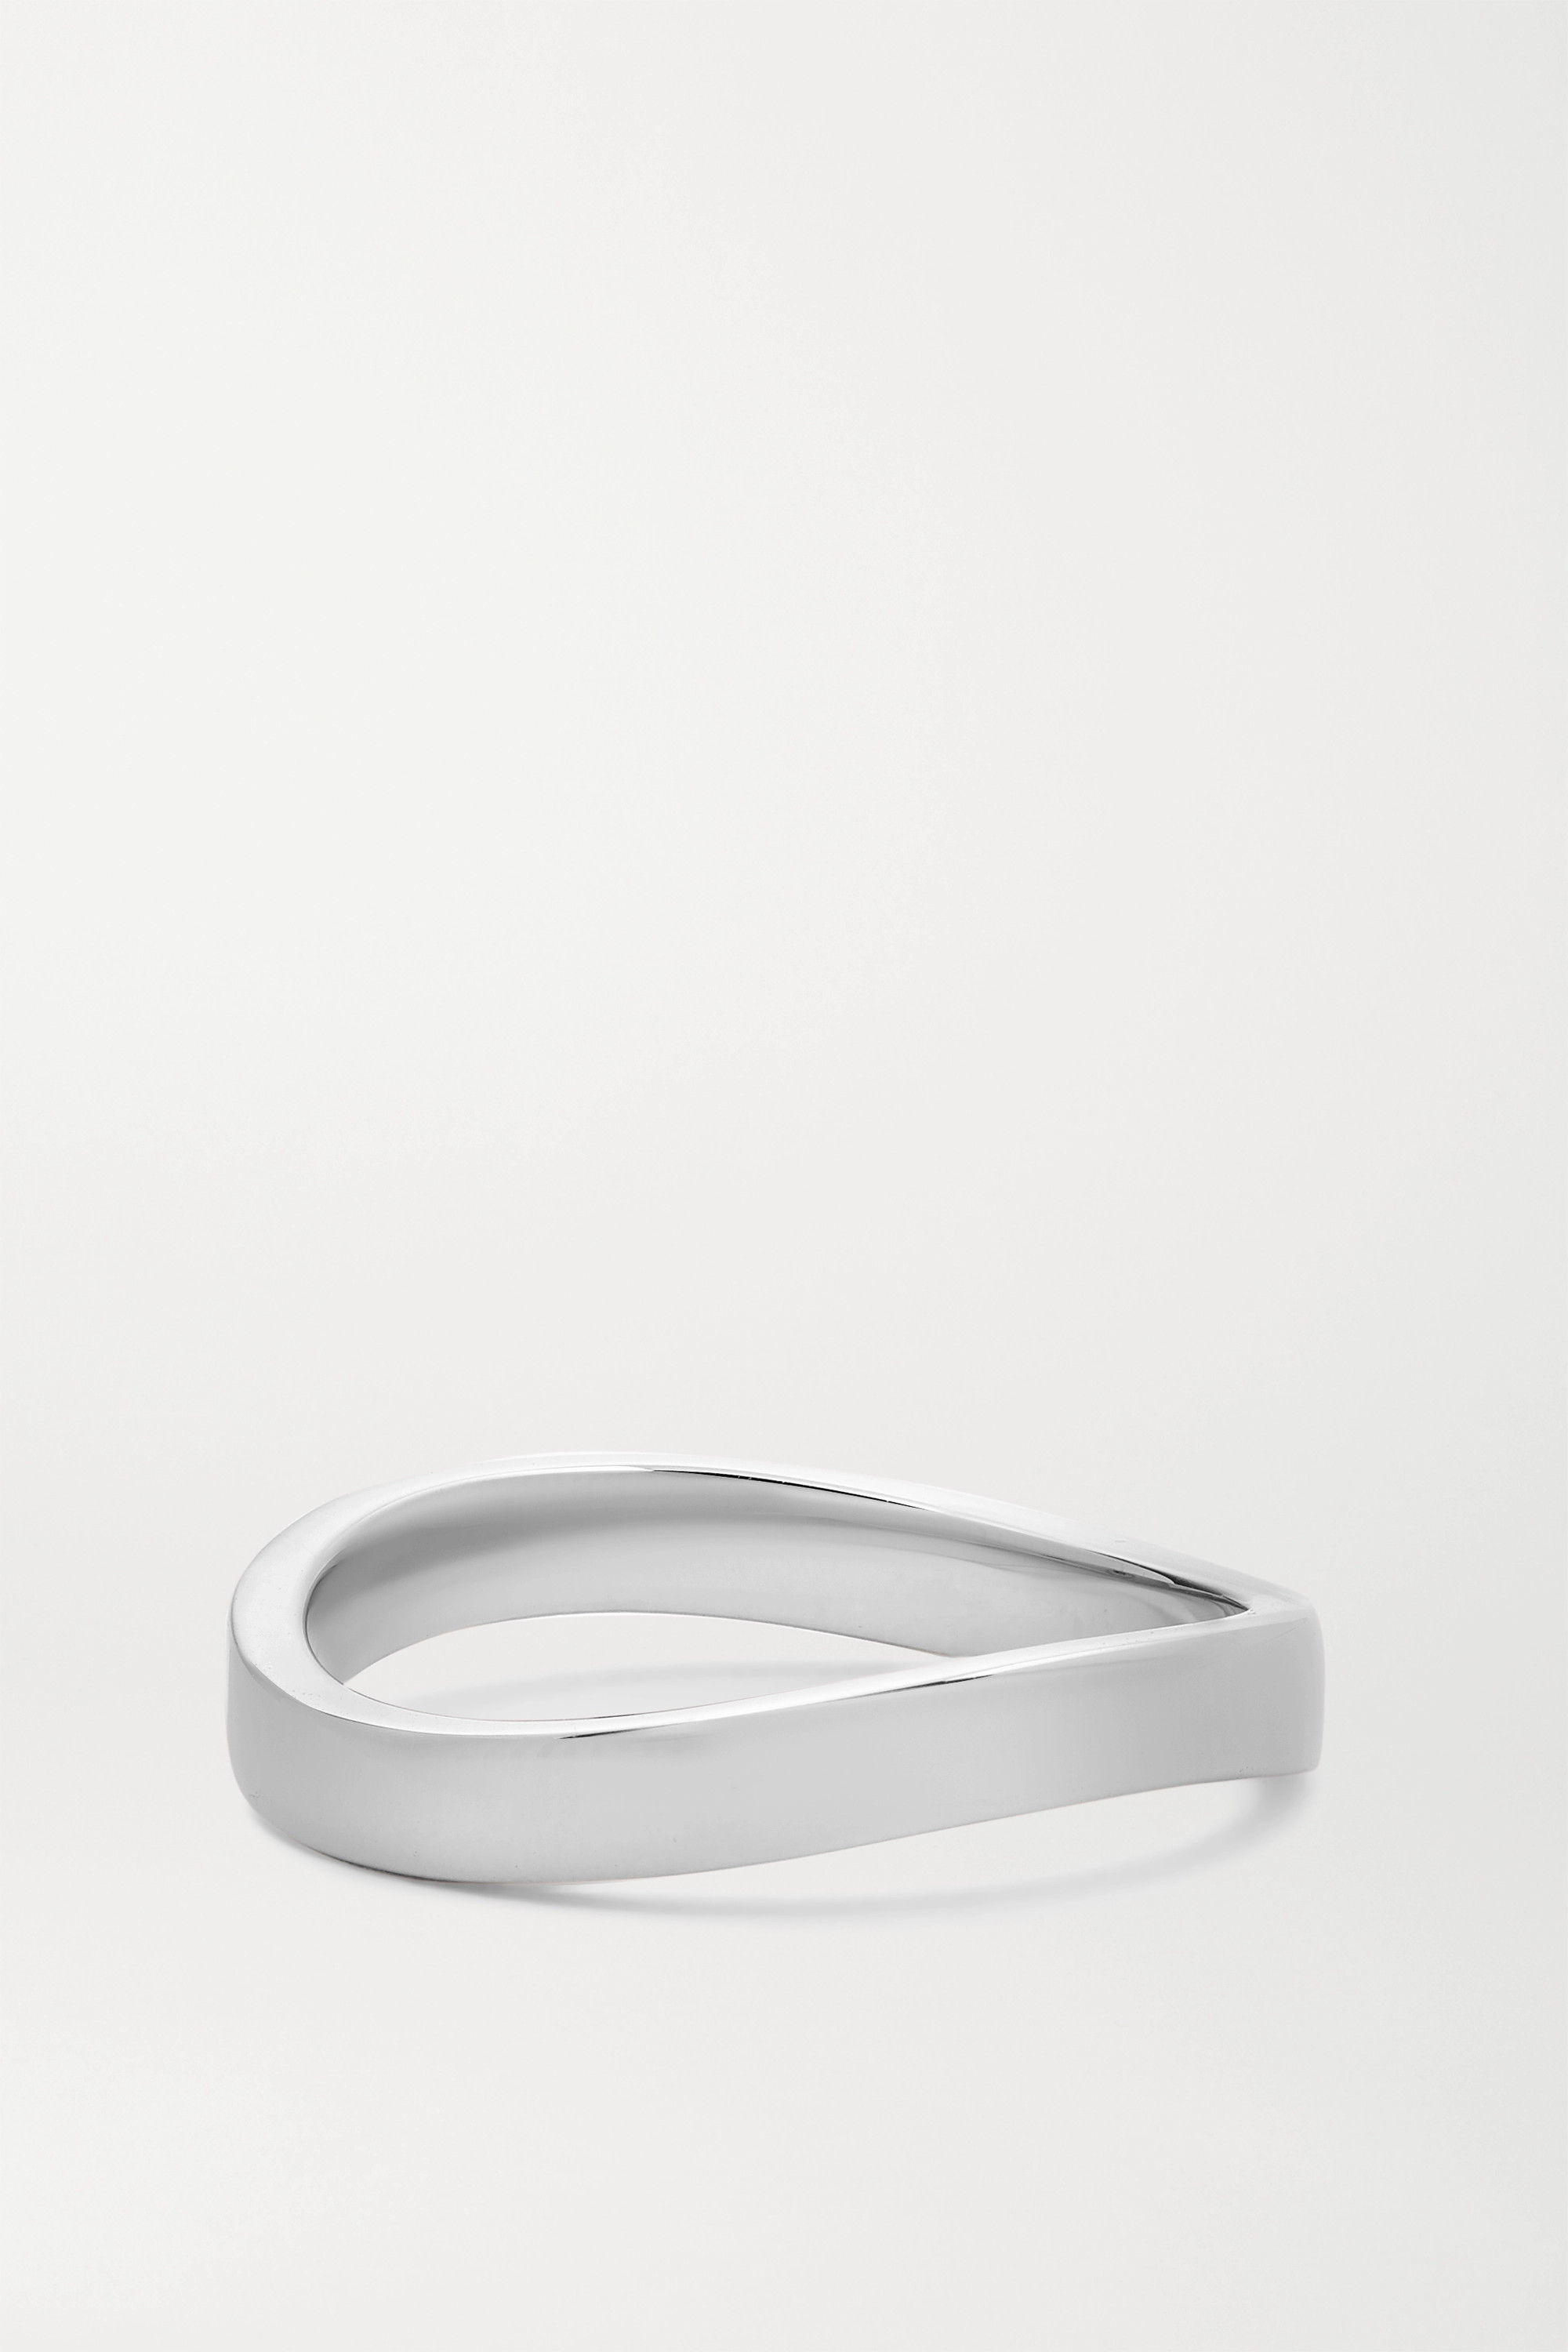 ANITA KO Curved 18-karat white gold ring